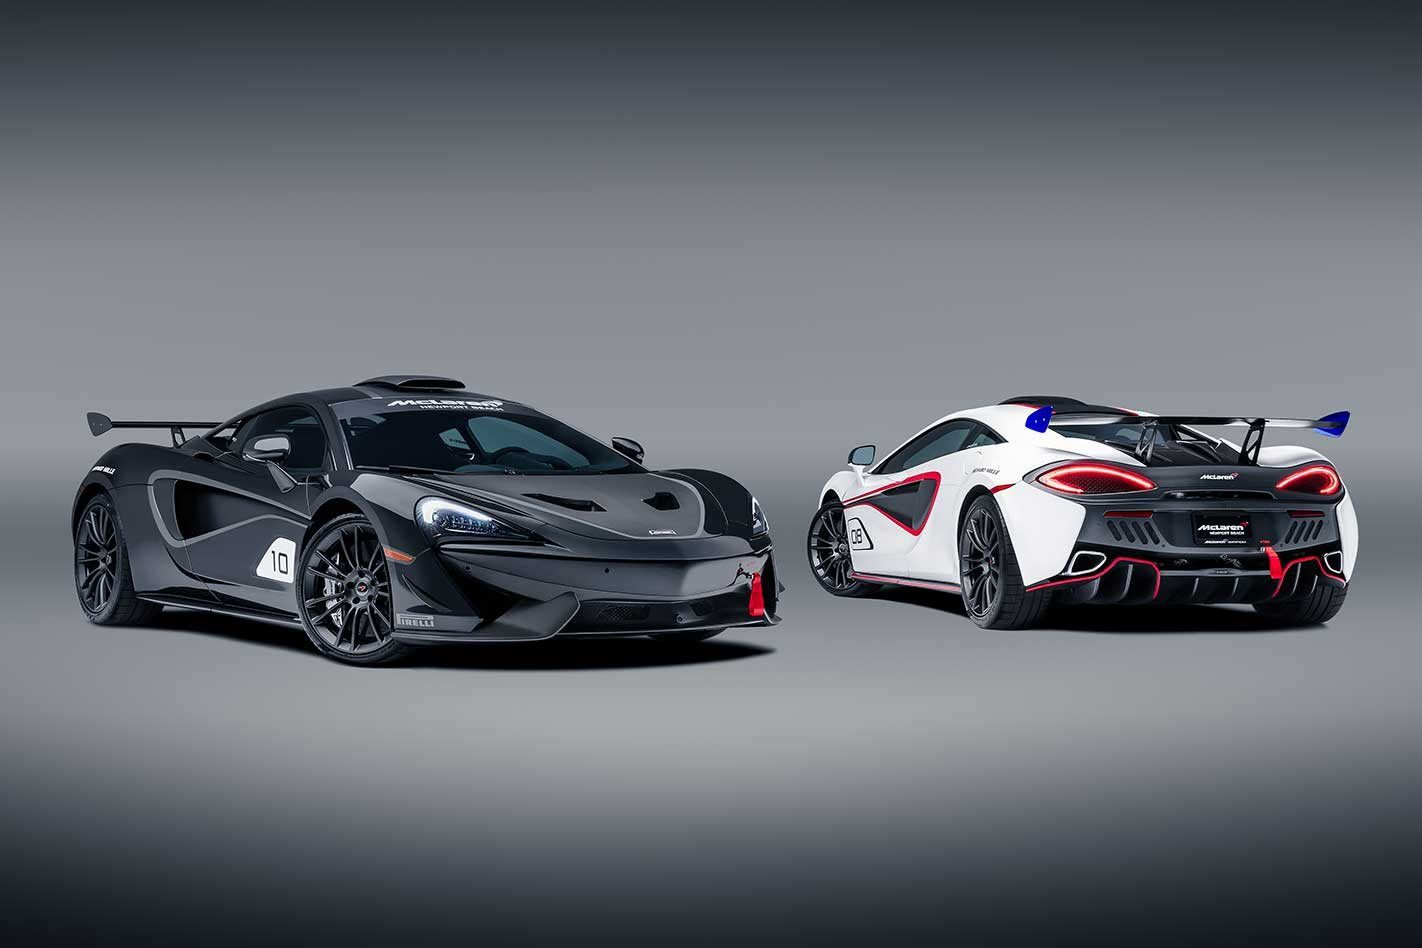 Ten Special Mclaren 570s Gt4 Inspired Cars Made For The Road